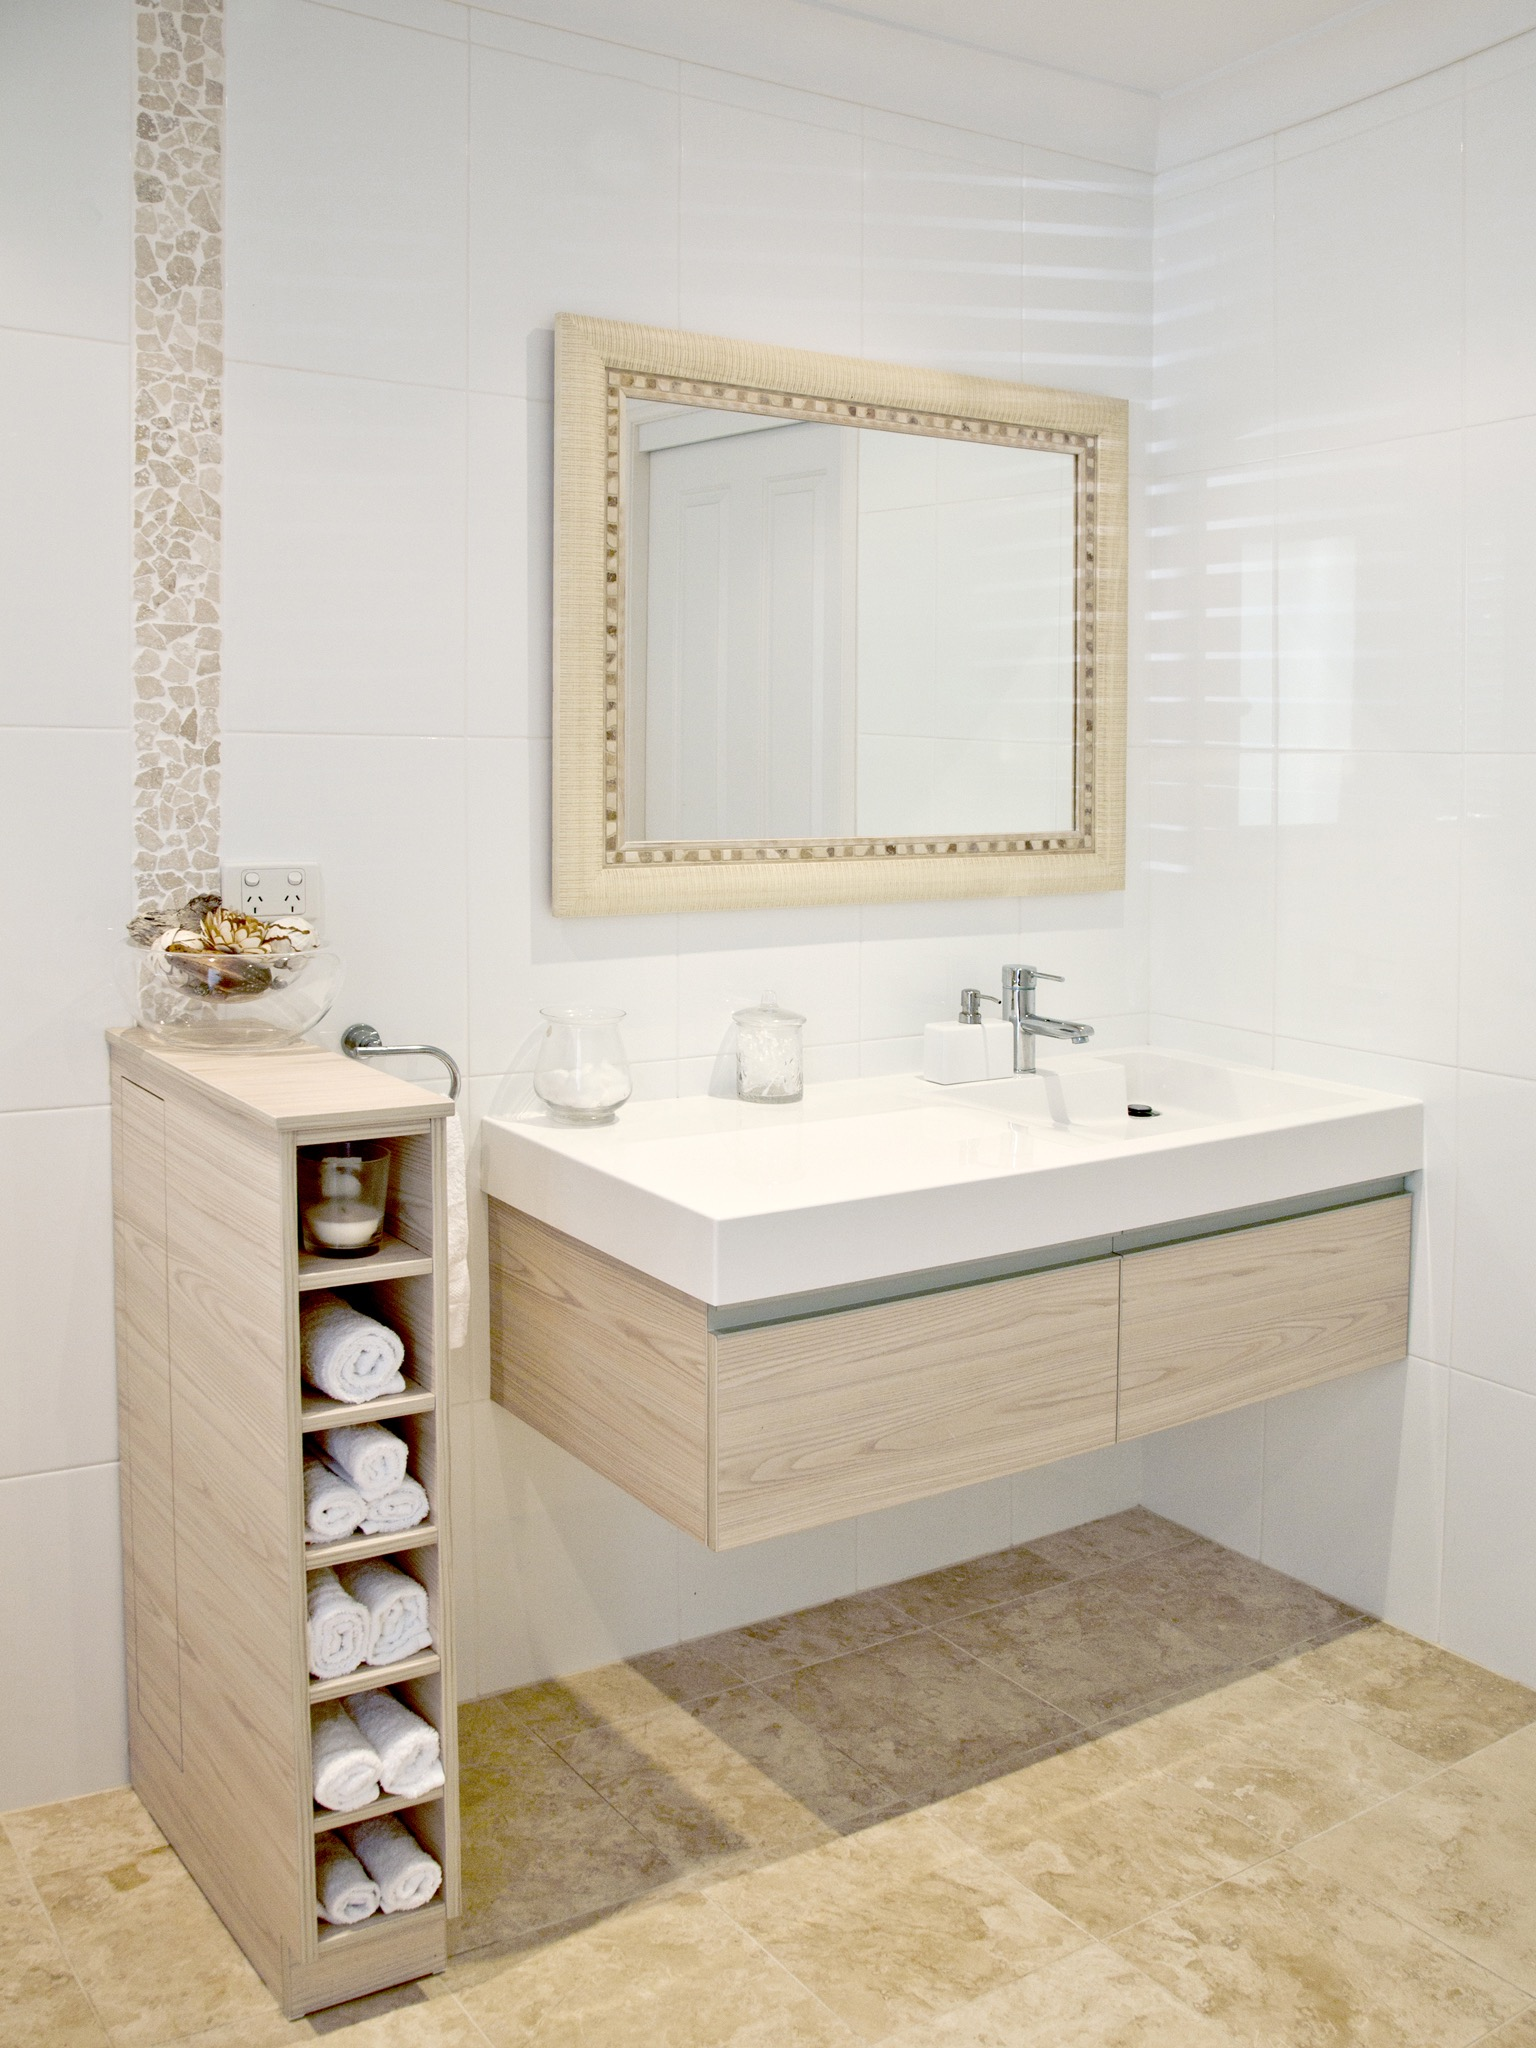 2017 Chic Contemporary Small Bathroom (Image 1 of 14)